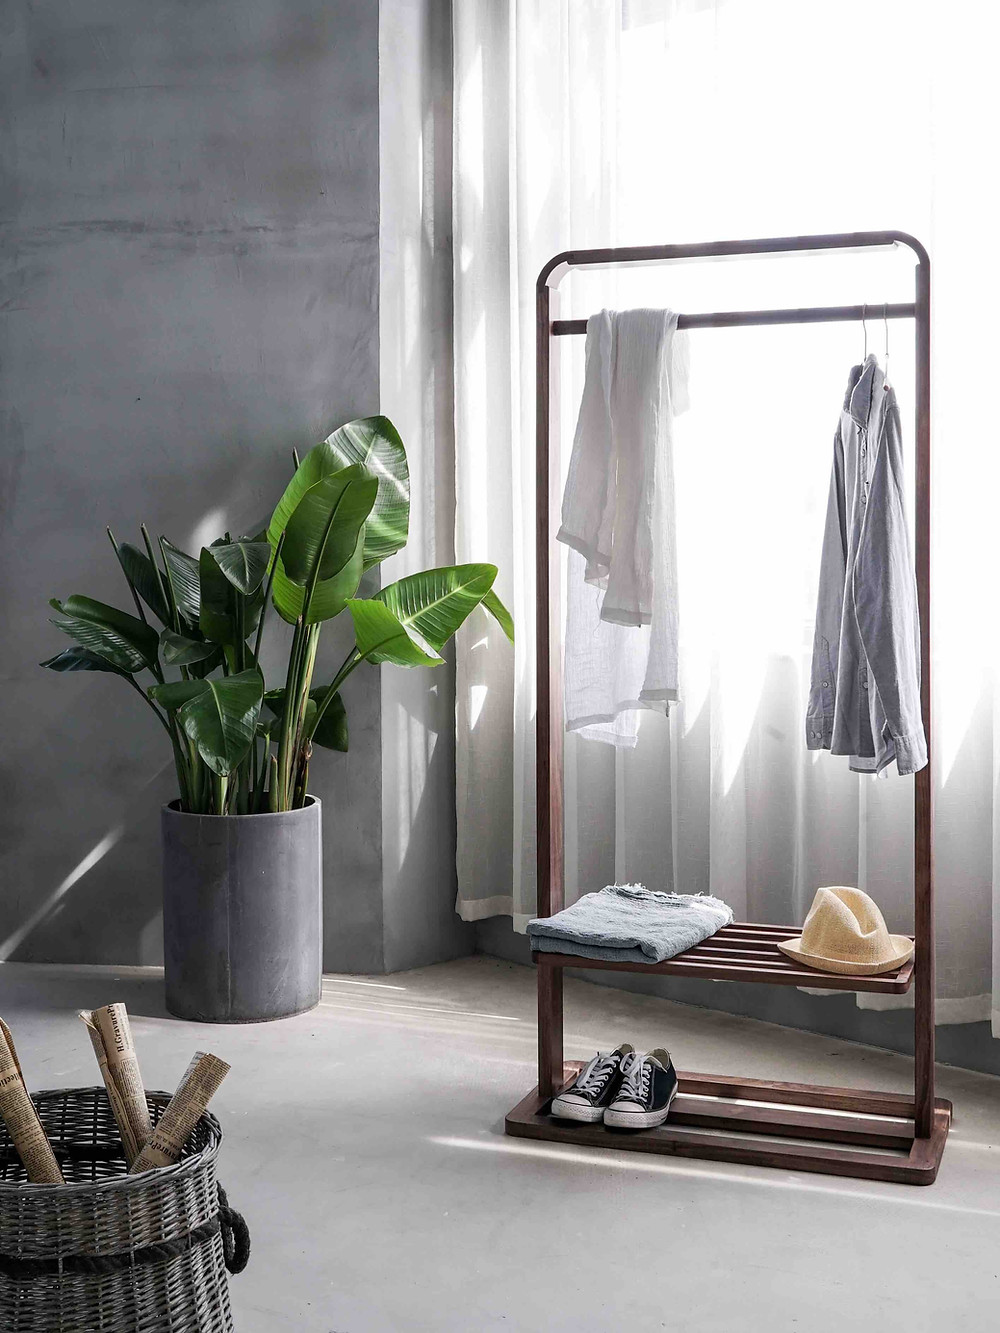 tidy organised room clothes hanger plant clean